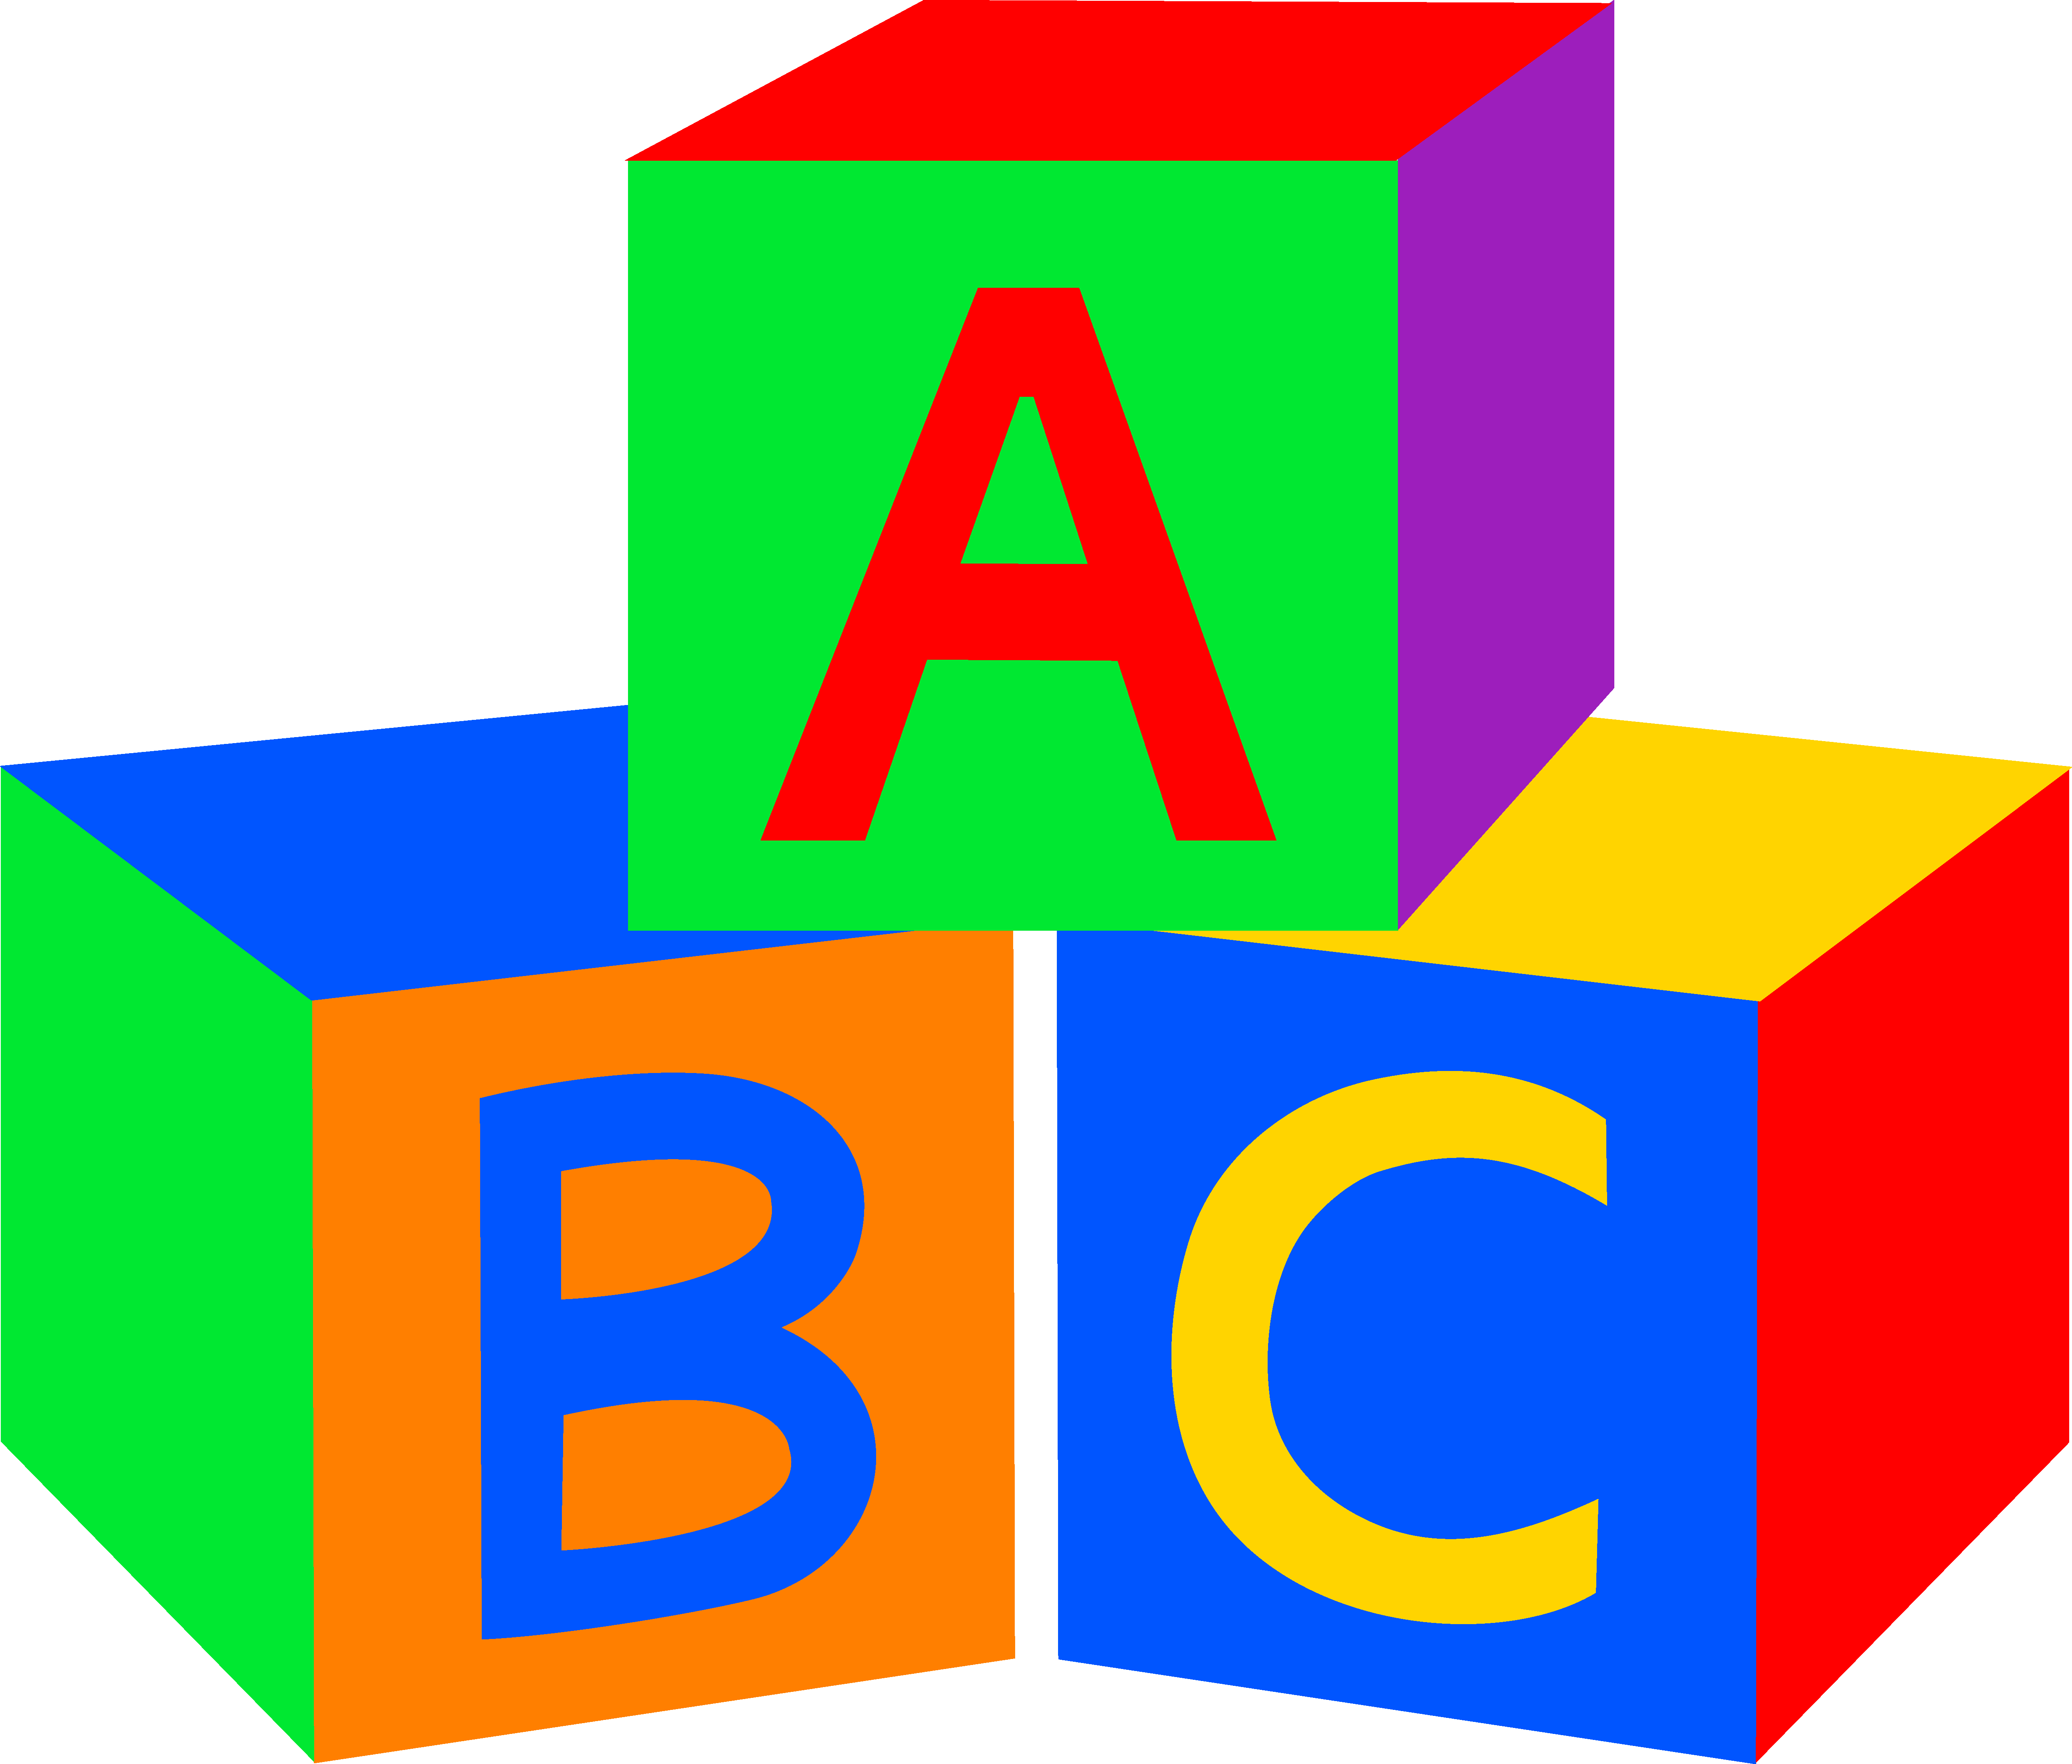 Abc analysis clipart clip art royalty free library Abc clipart images - ClipartFest clip art royalty free library